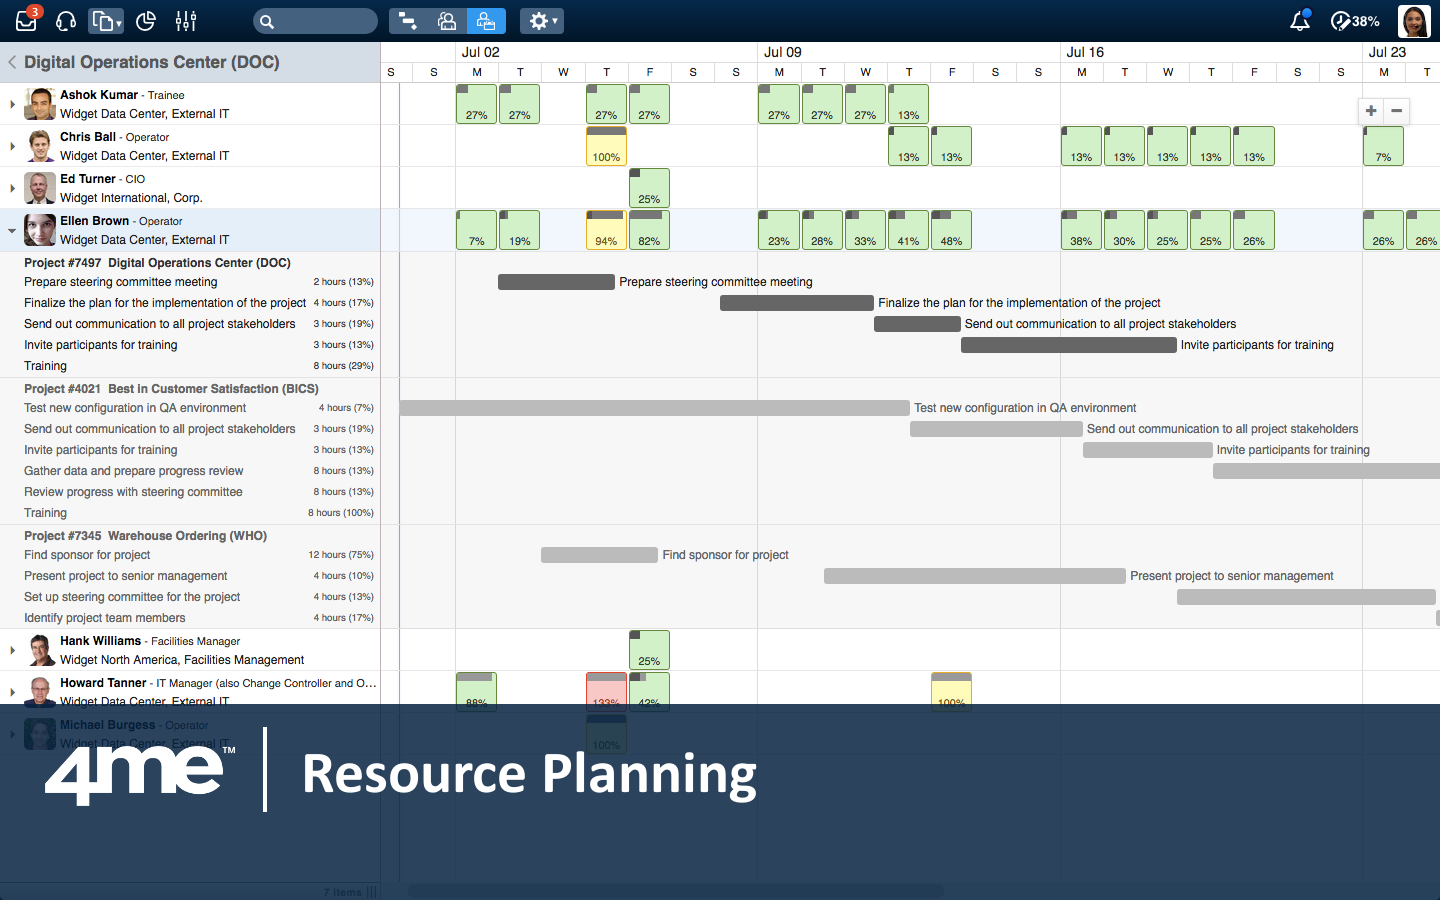 The resource planning overviews make it easy to distribute assignments among the available specialists using drag-and-drop.